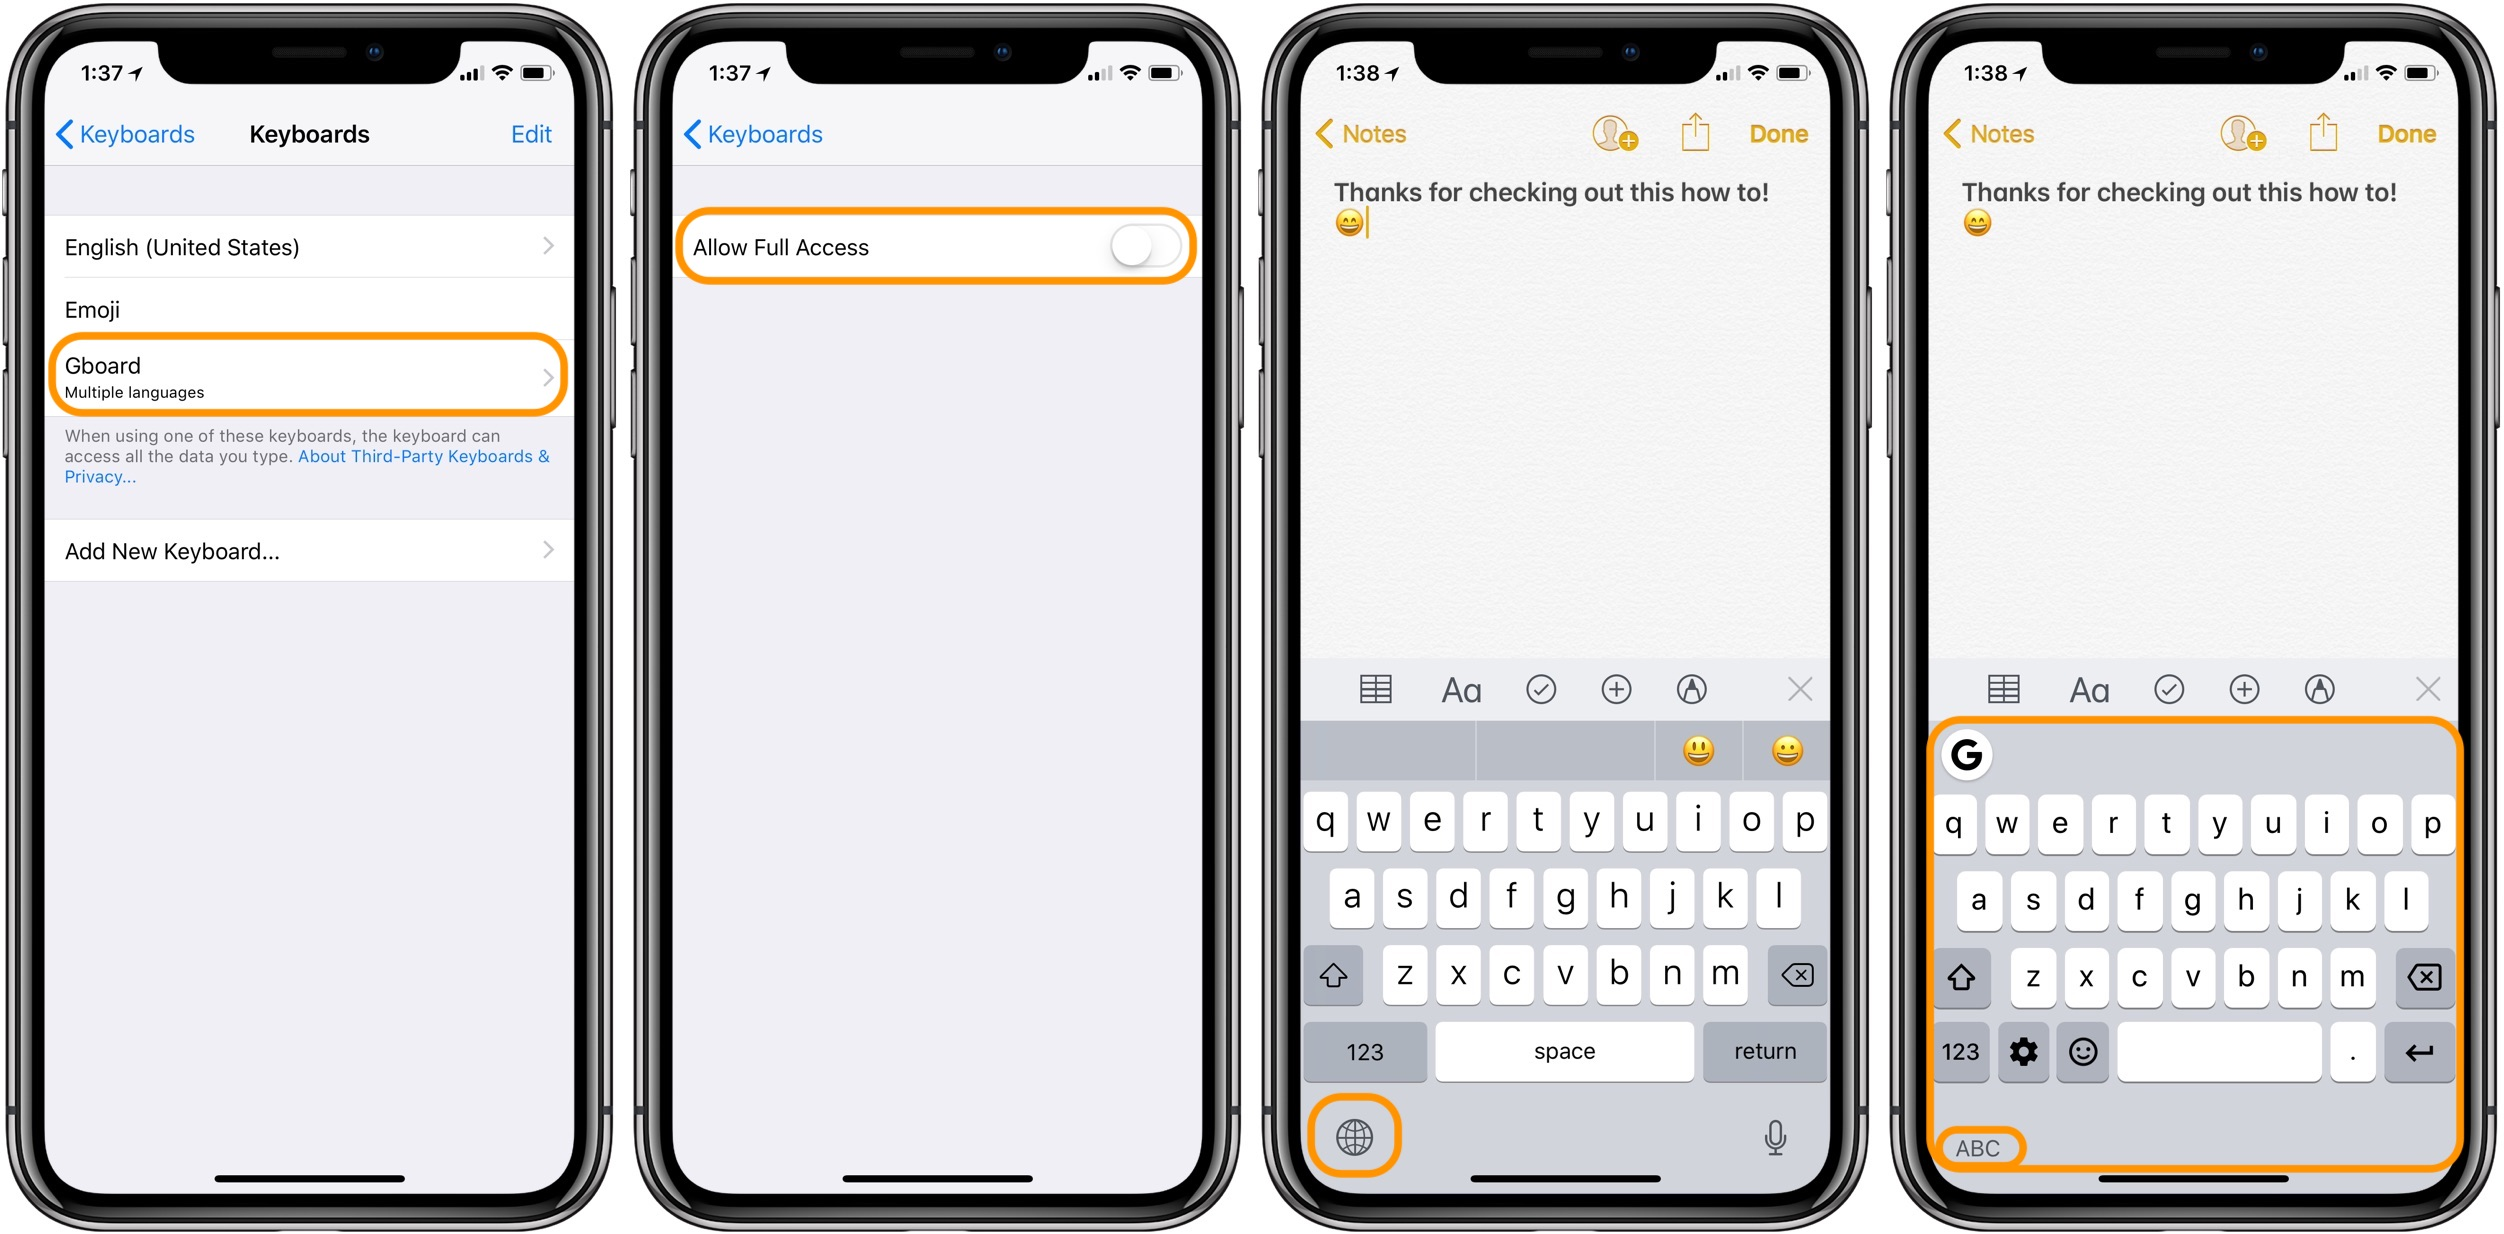 How to use swipe or glide typing on iPhone - 9to5Mac